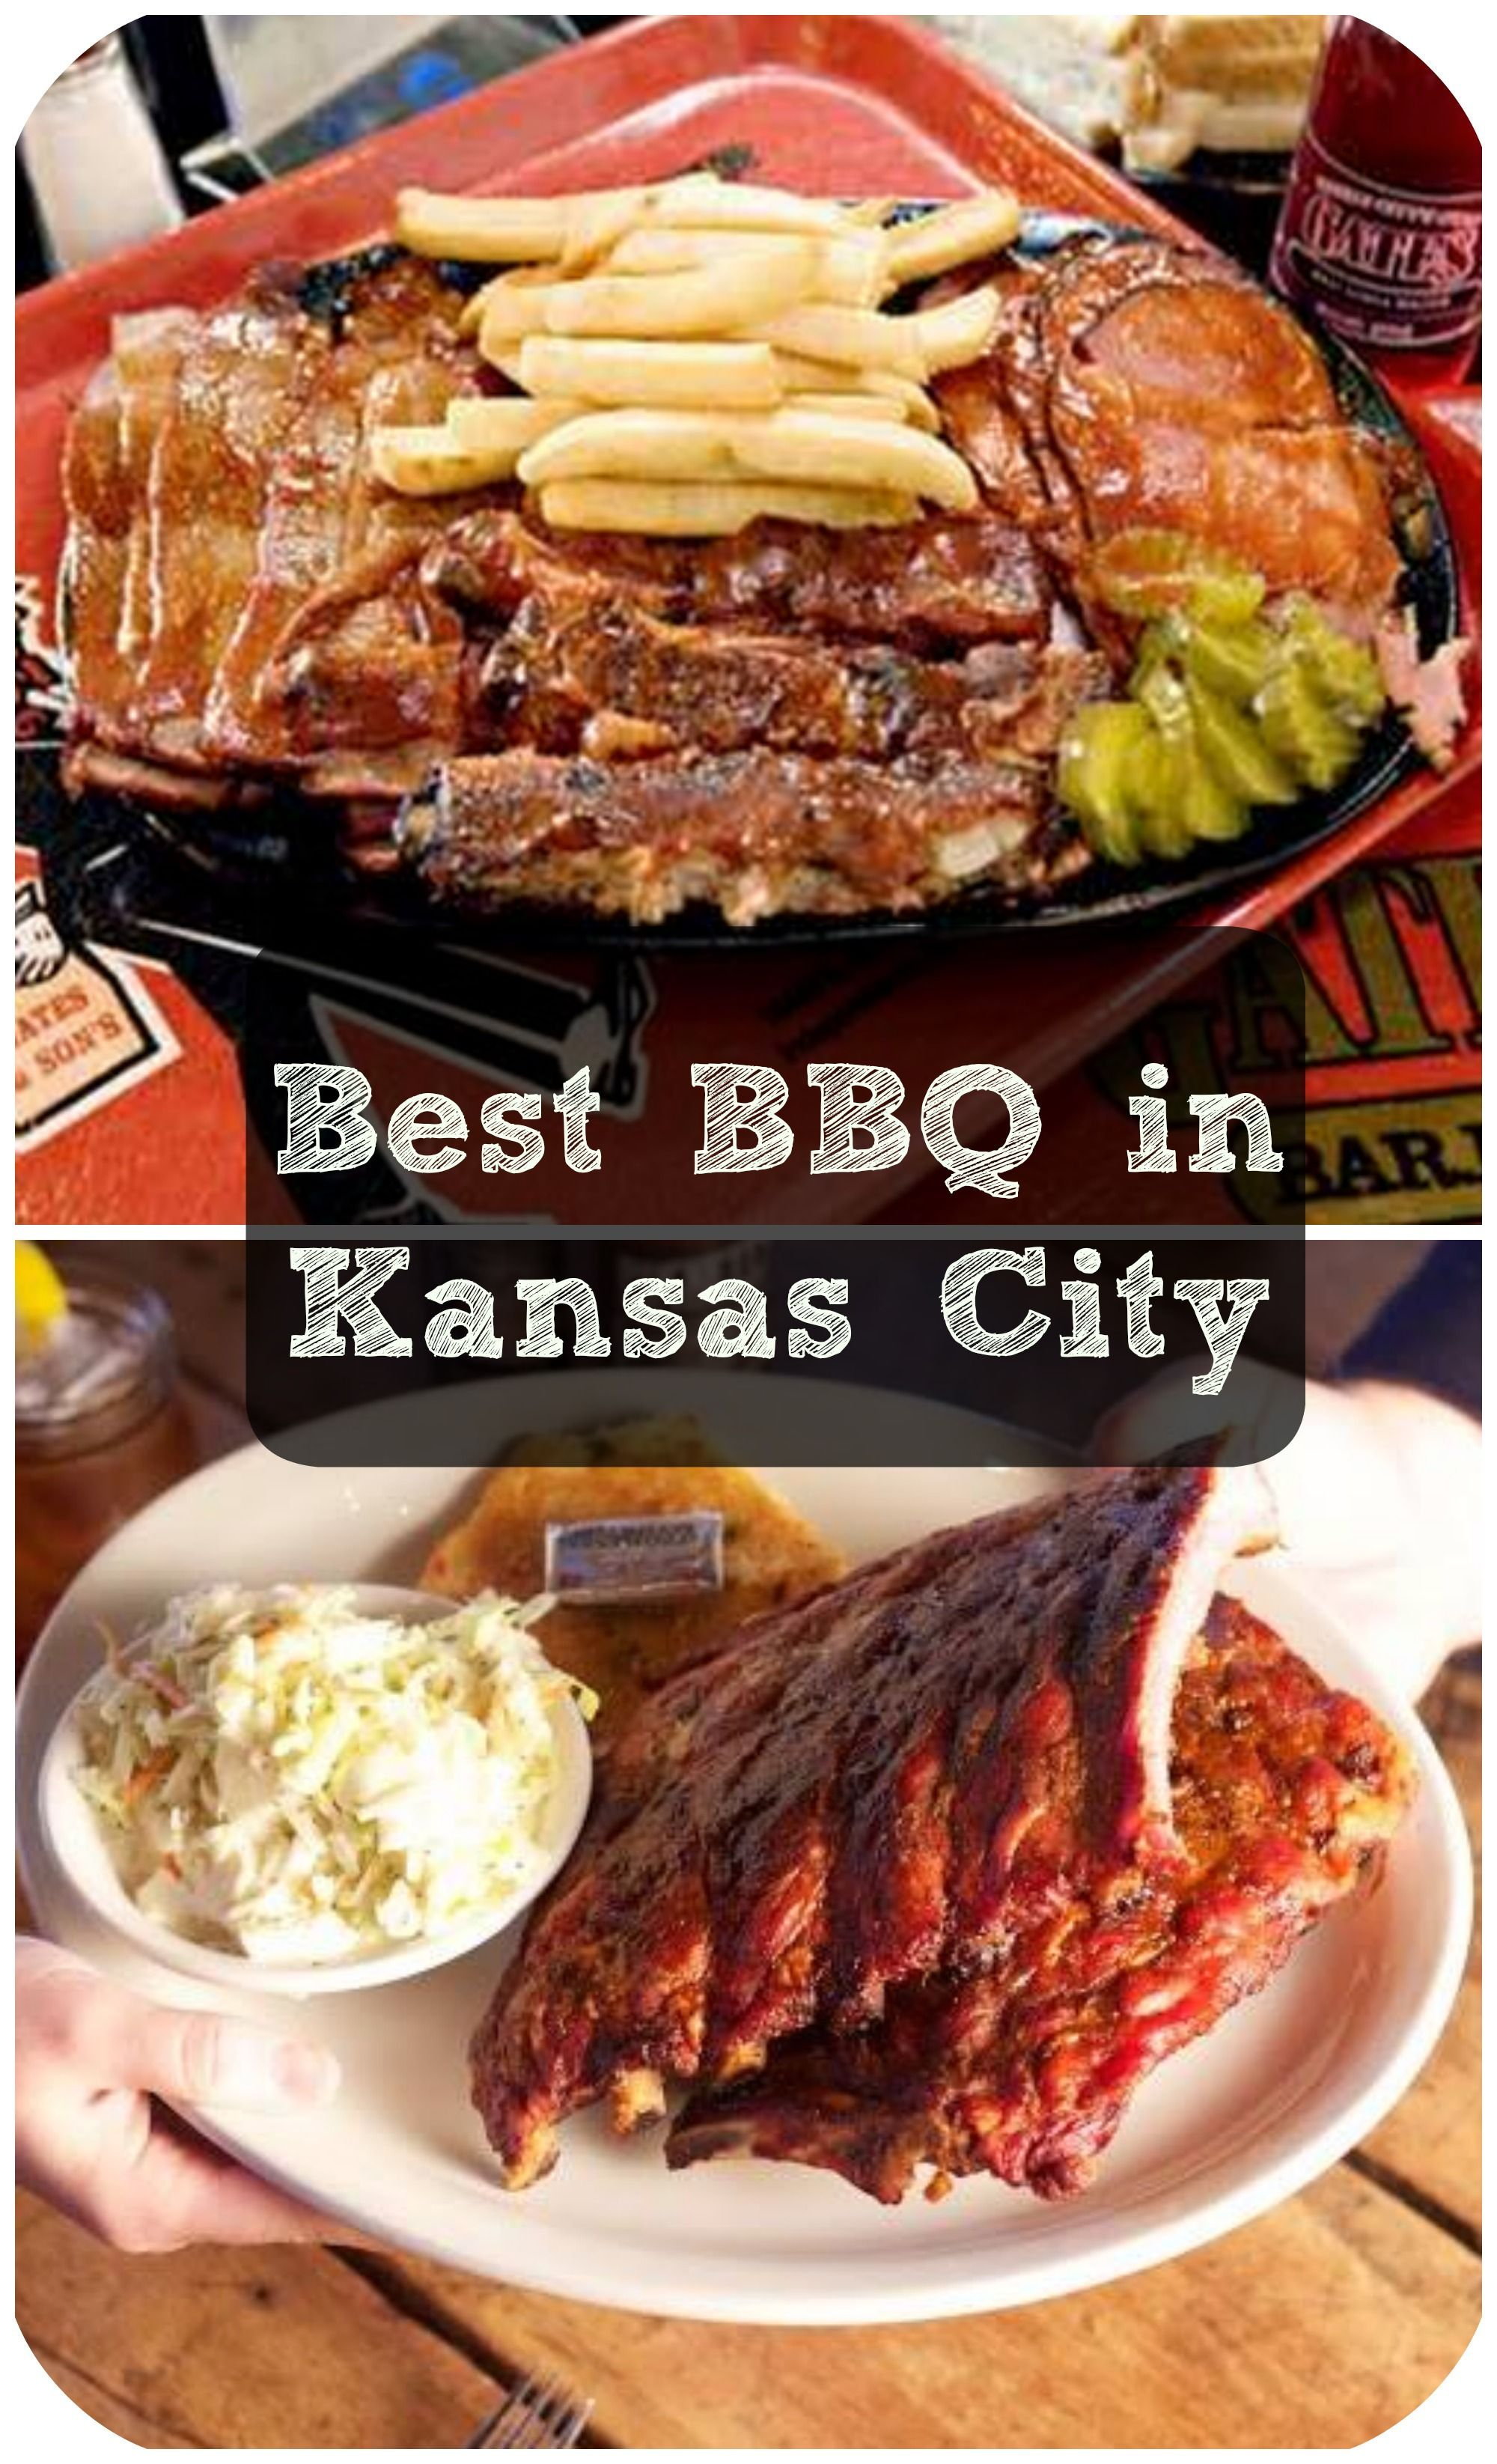 Gates Bbq Best In Kansas City I Recently Visited Kc Search Of Finding Some Restaurants That Would Give Me Something To Brag